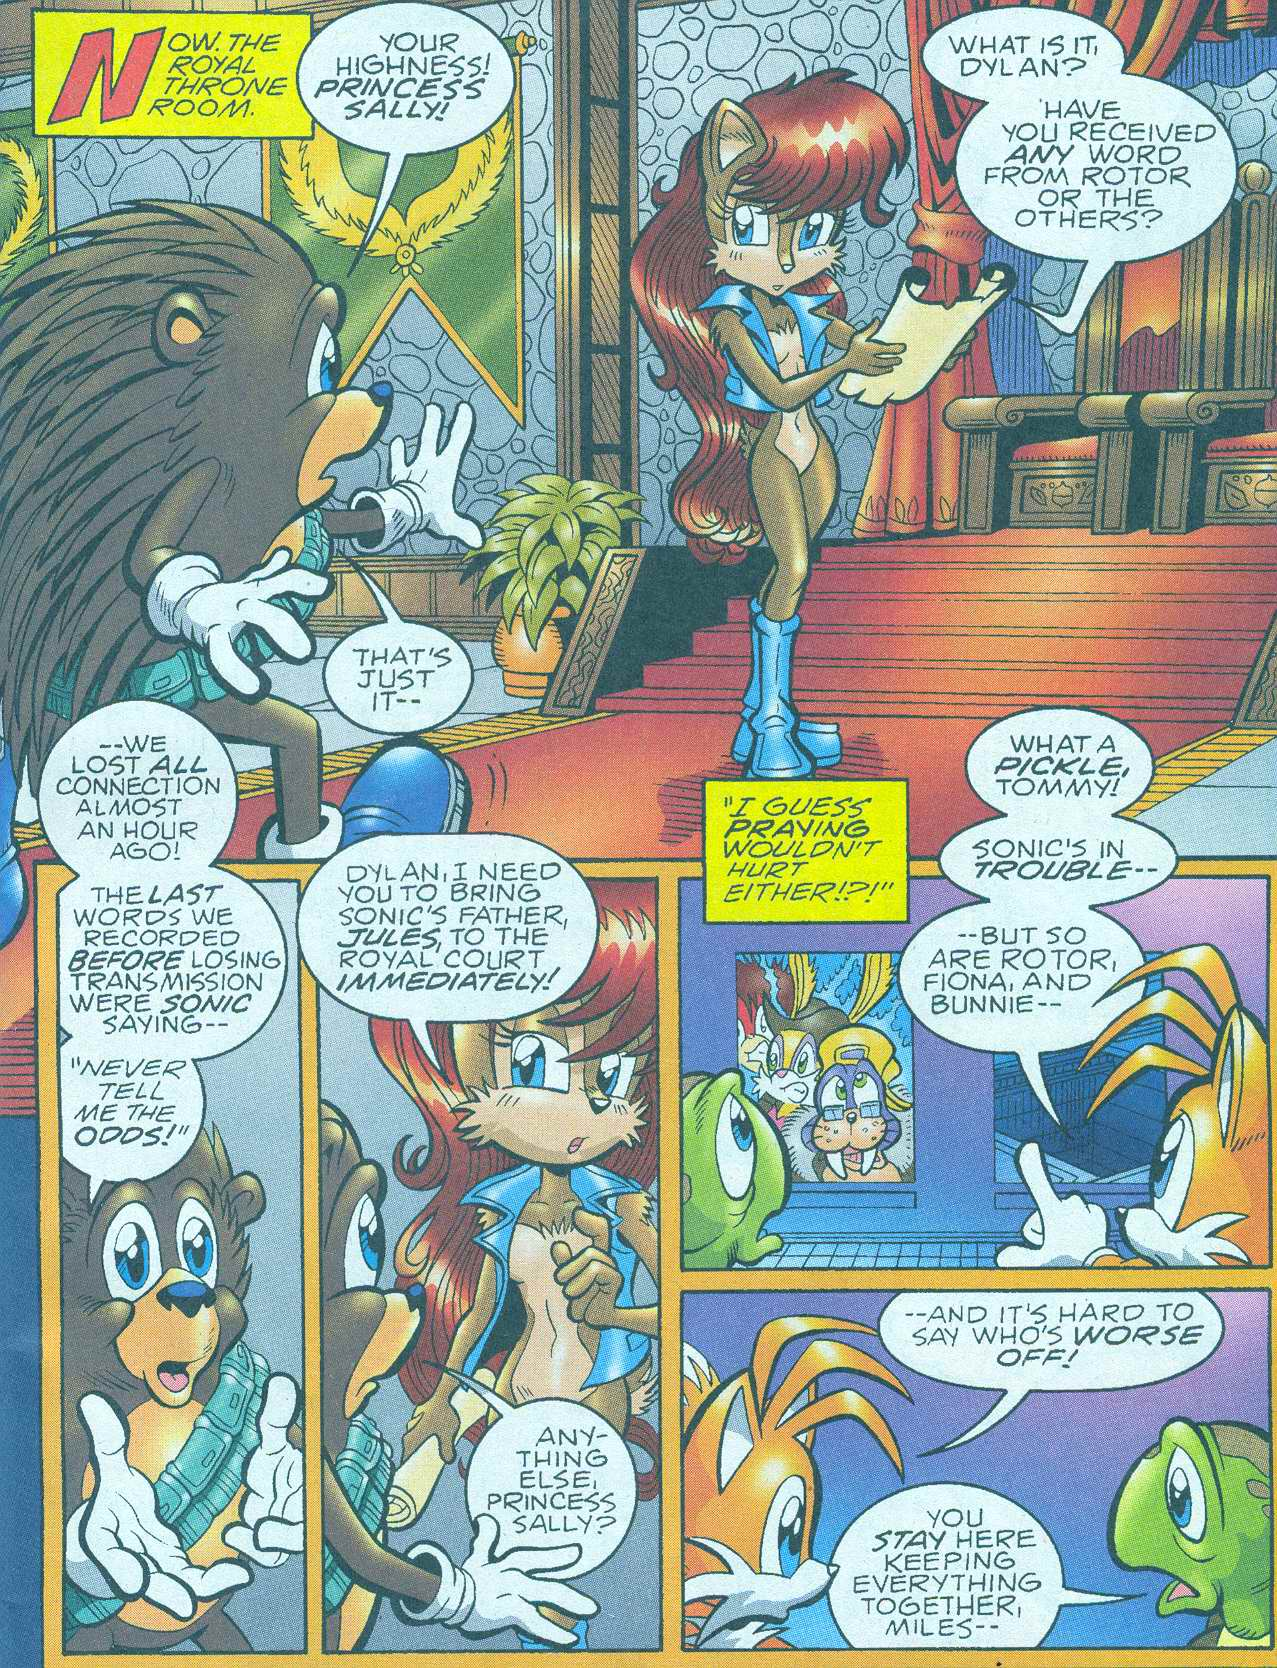 Sonic - Archie Adventure Series June 2005 Page 01